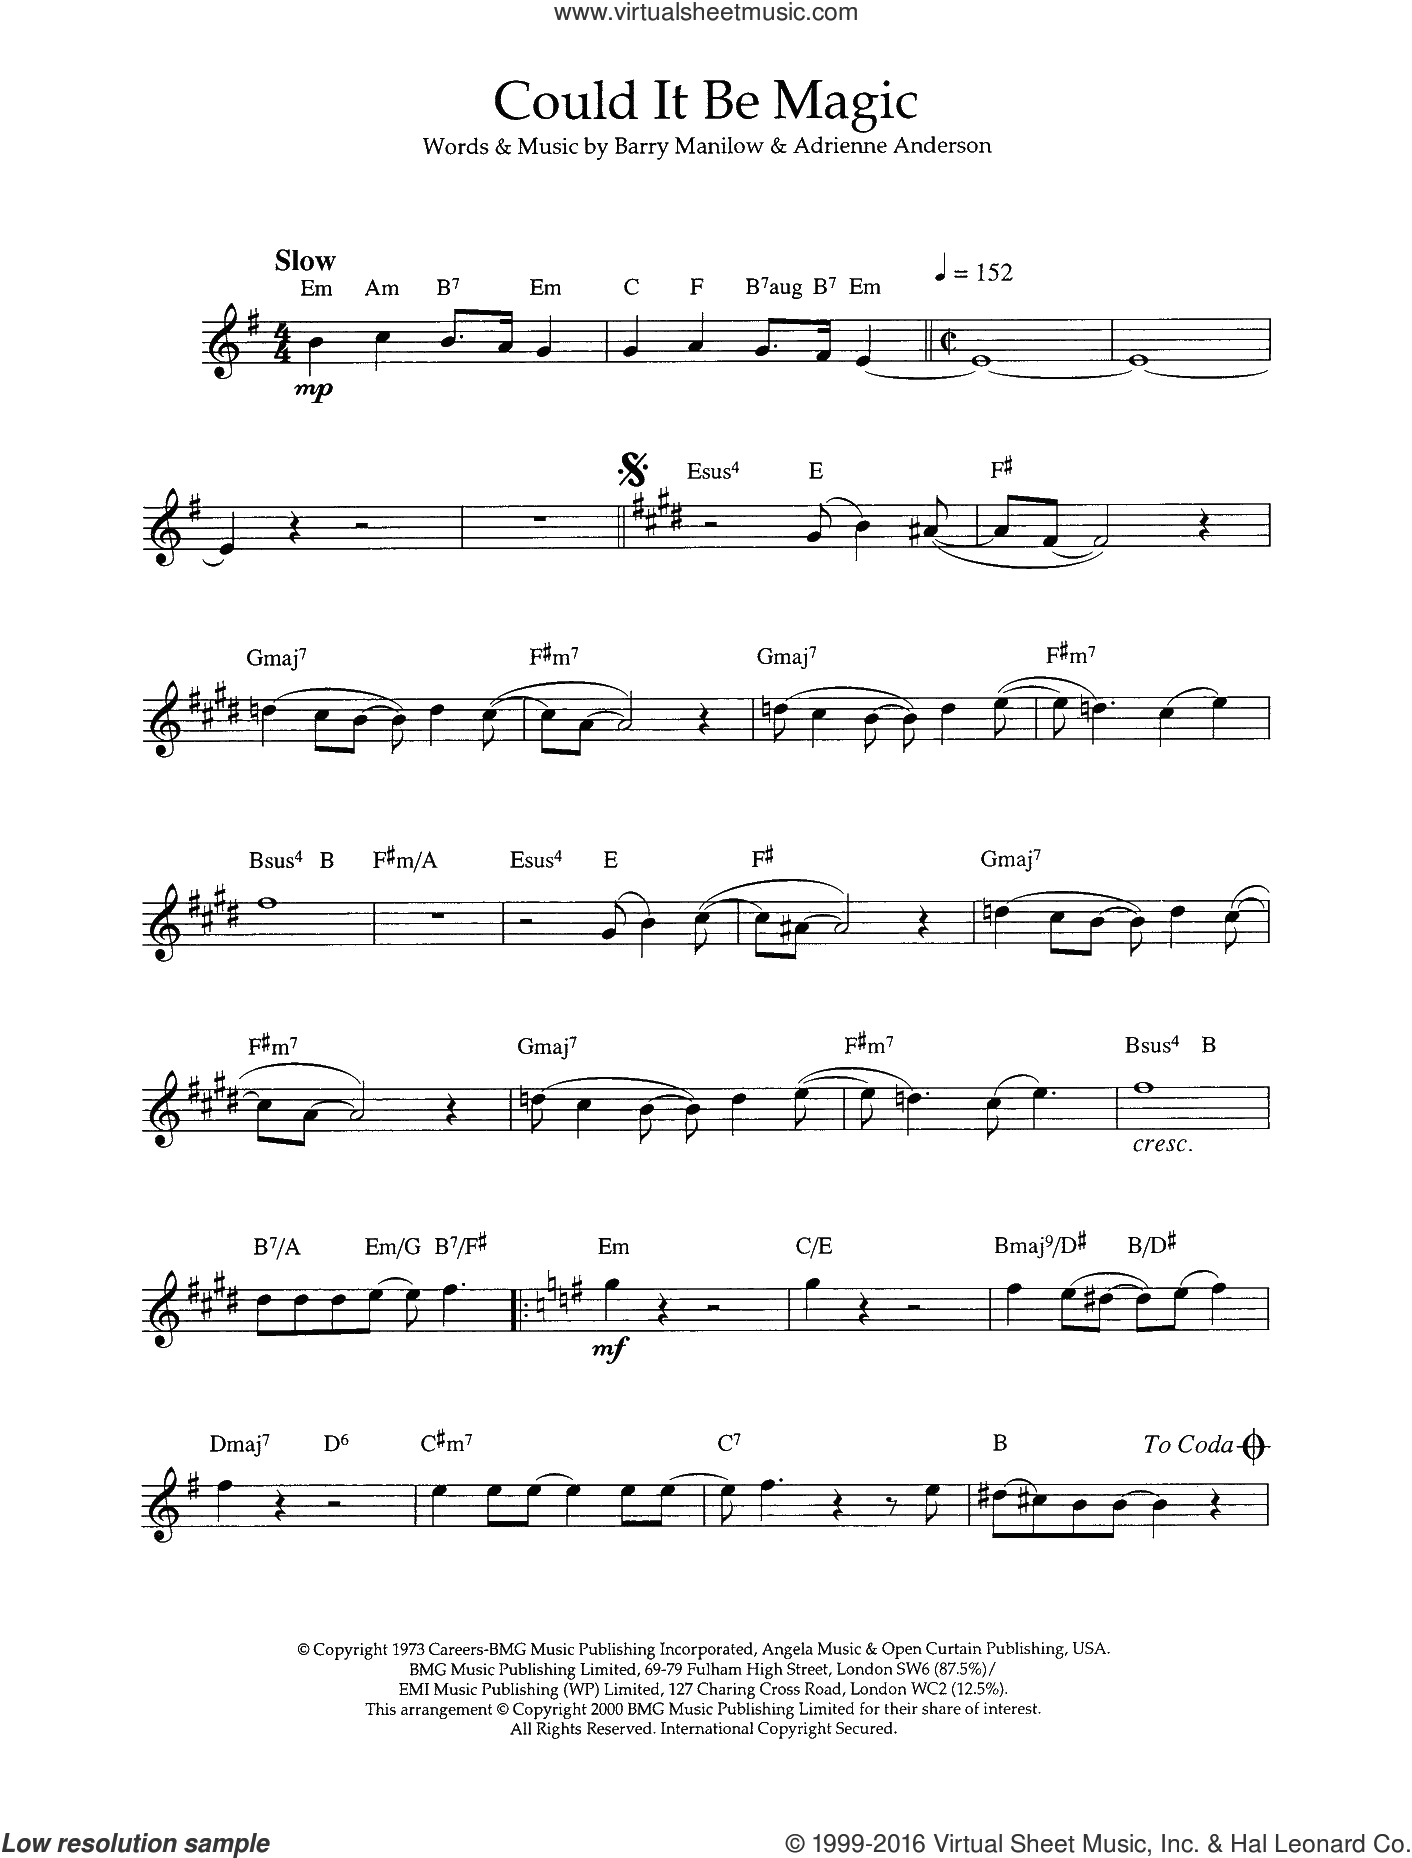 Could It Be Magic sheet music for flute solo by Barry Manilow. Score Image Preview.